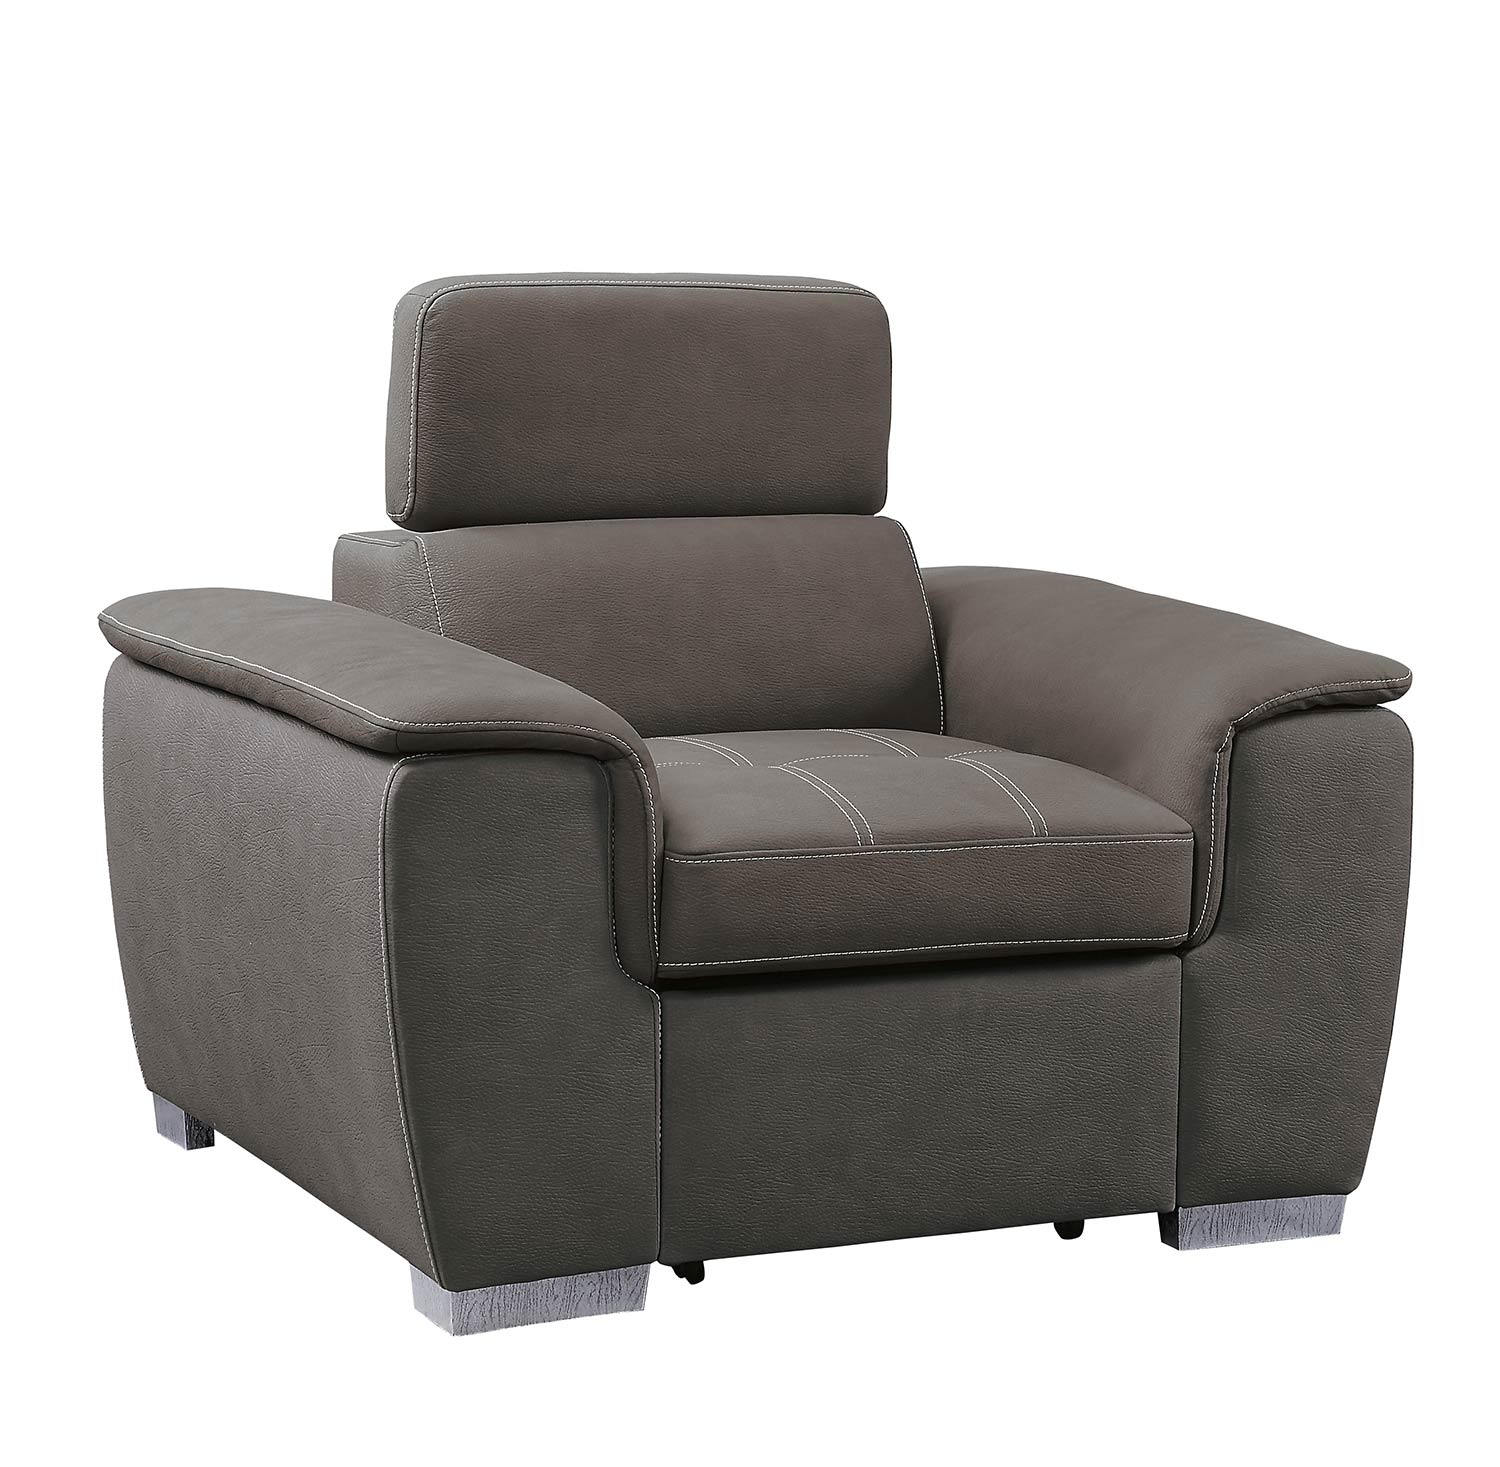 Homelegance Ferriday Chair with Pull-out Ottoman - Taupe